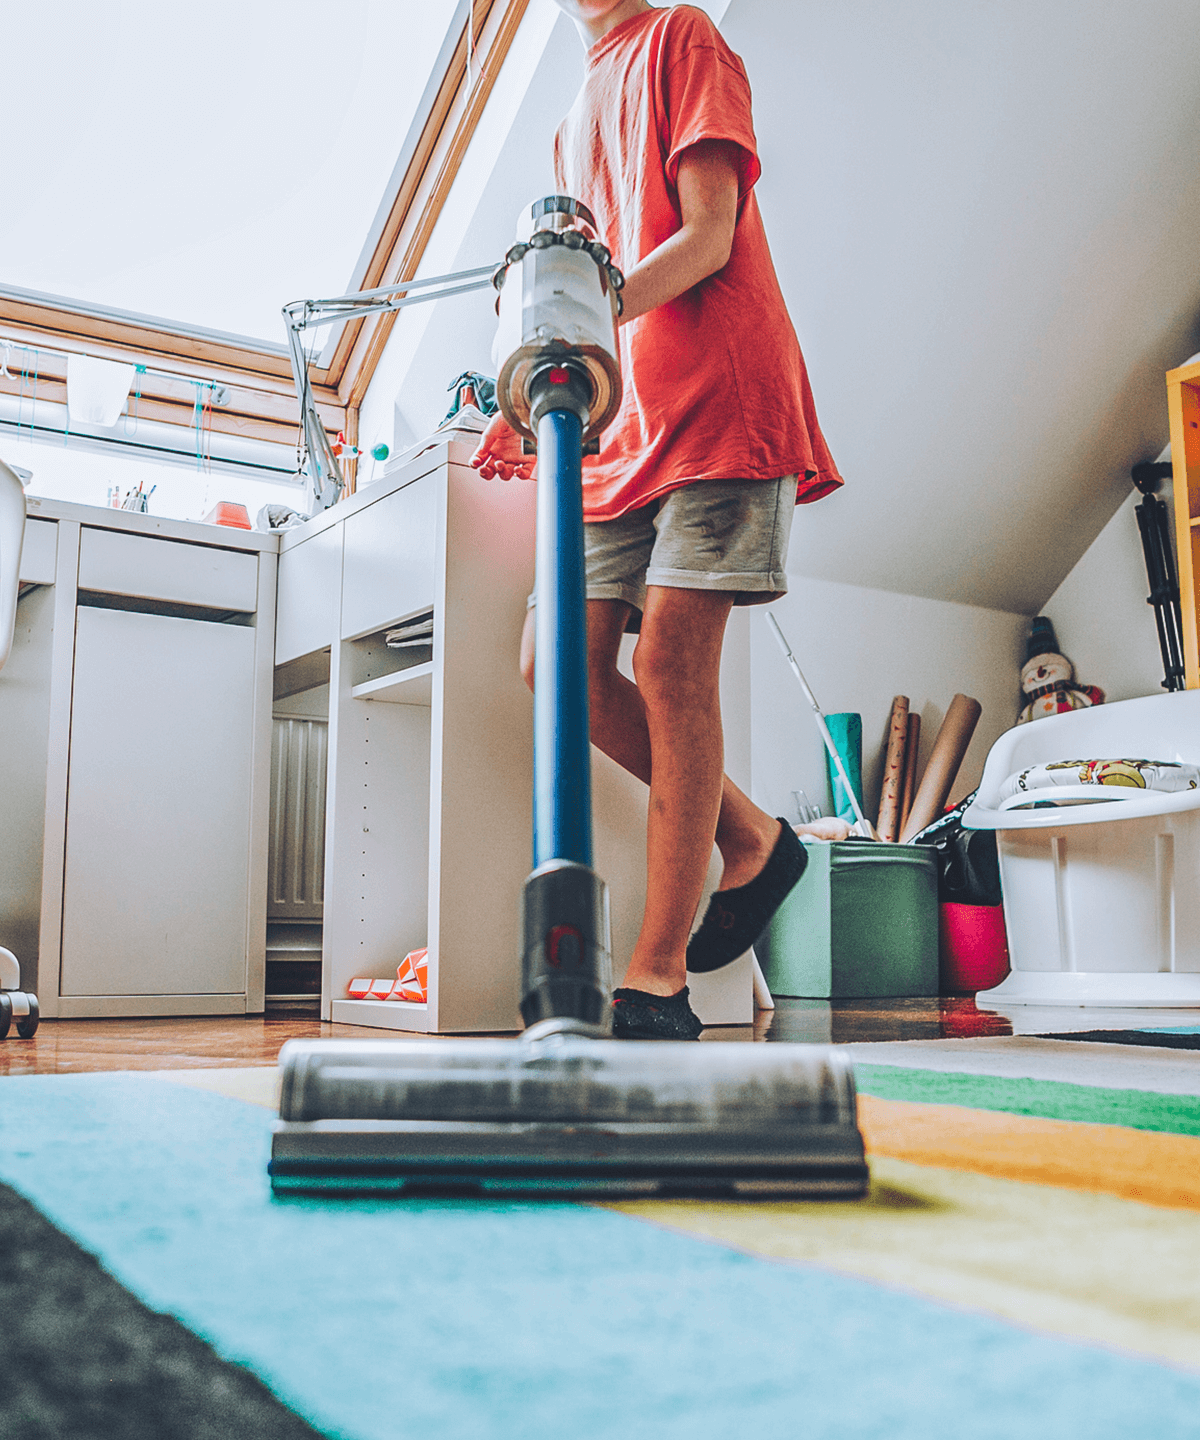 A teenager vacuuming his room with a Dyson vacuum